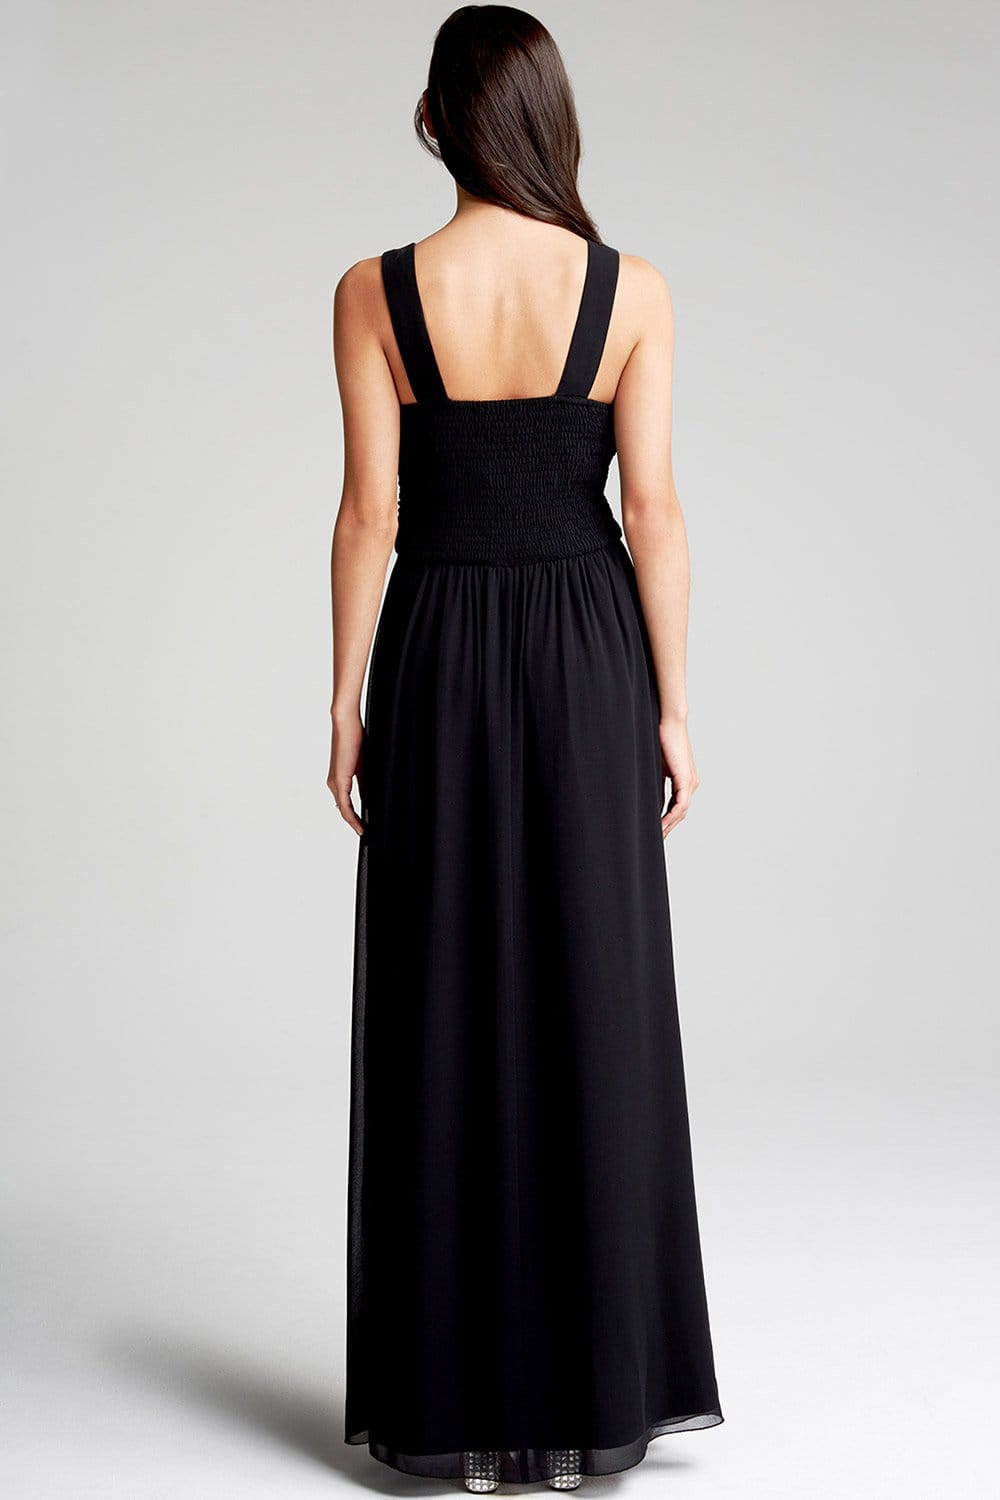 Black Embellished Neck Maxi Dress  from Little Mistress UK